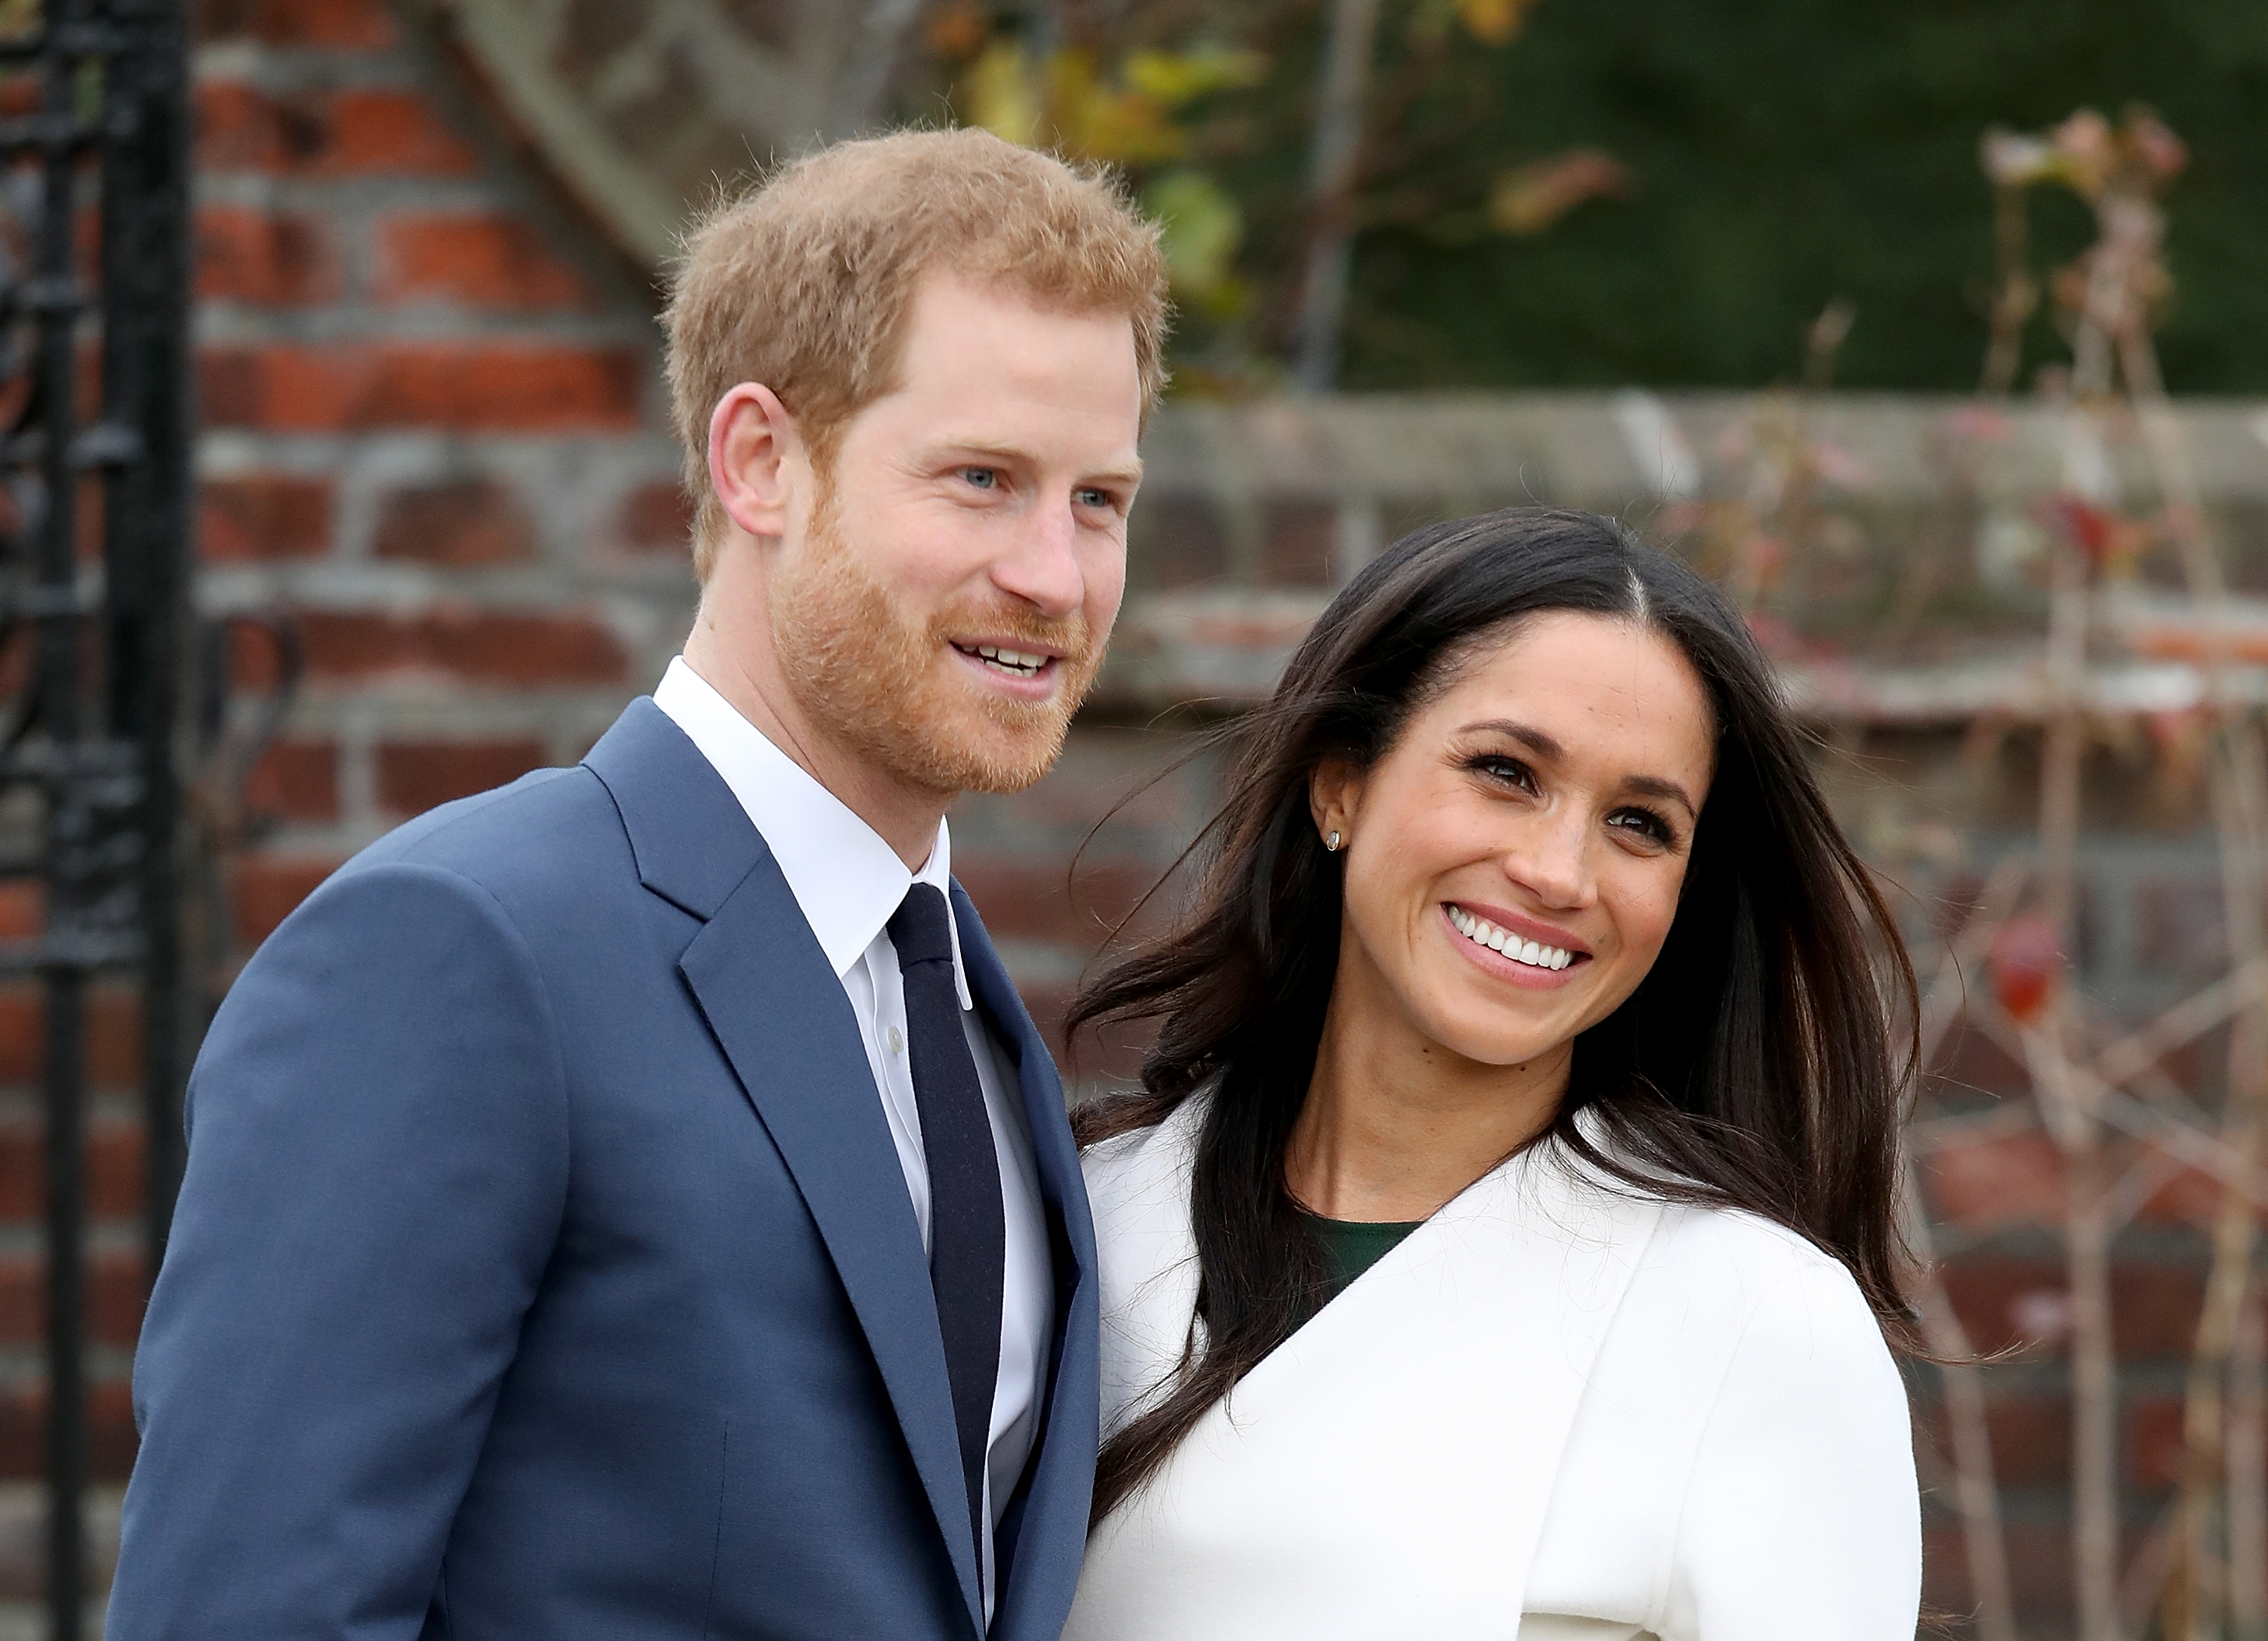 Prince Harry and Meghan Markle charm crowds in first public engagement